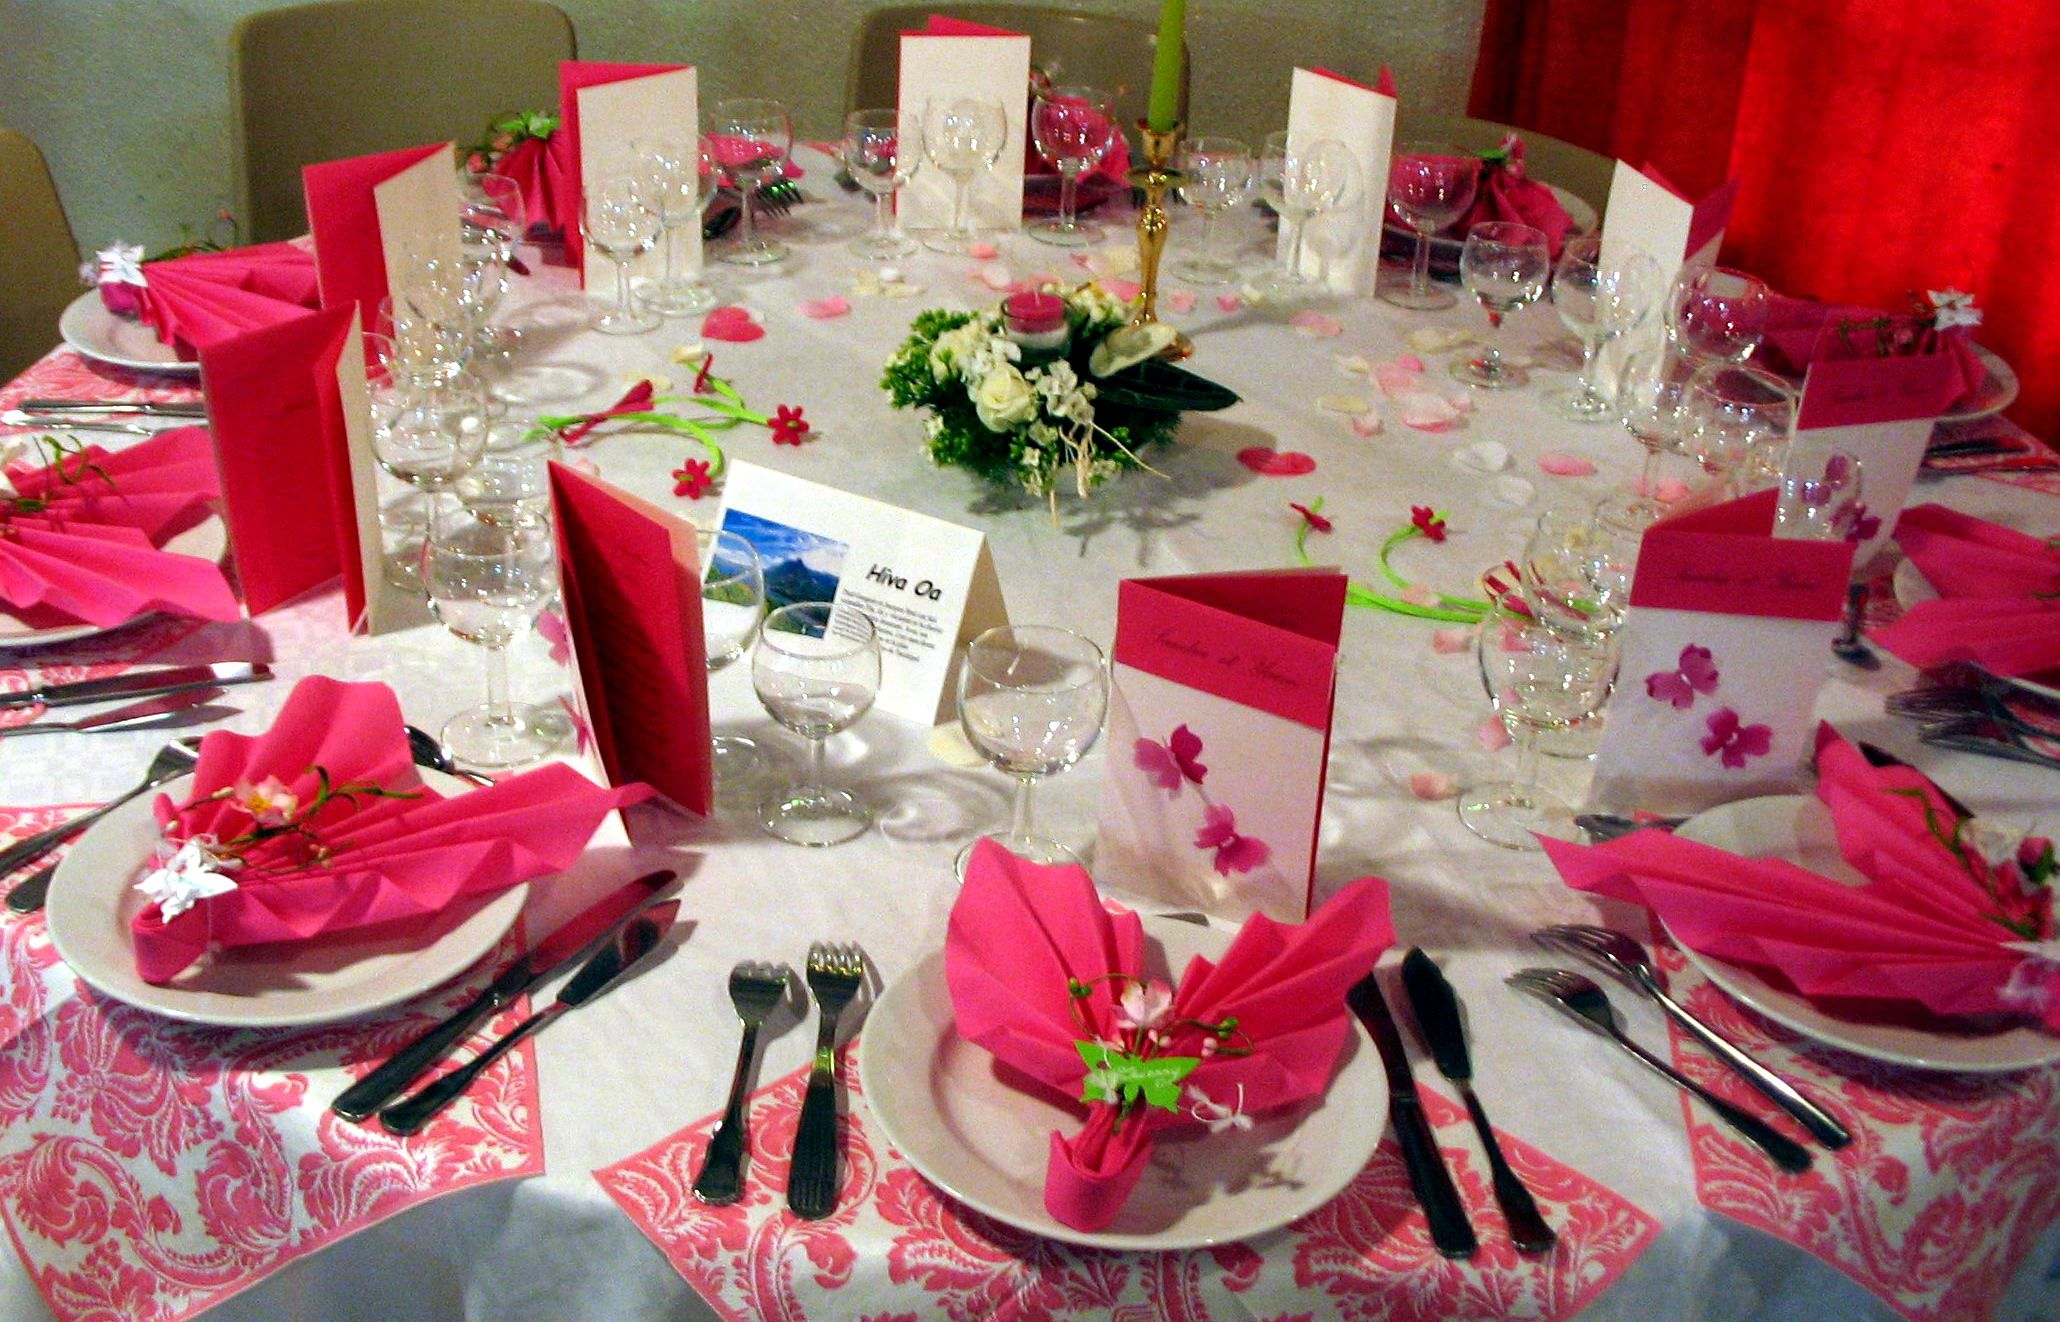 D coration table de mariage photo d co de table mariage rouge et blanc we - Deco de table mariage ...